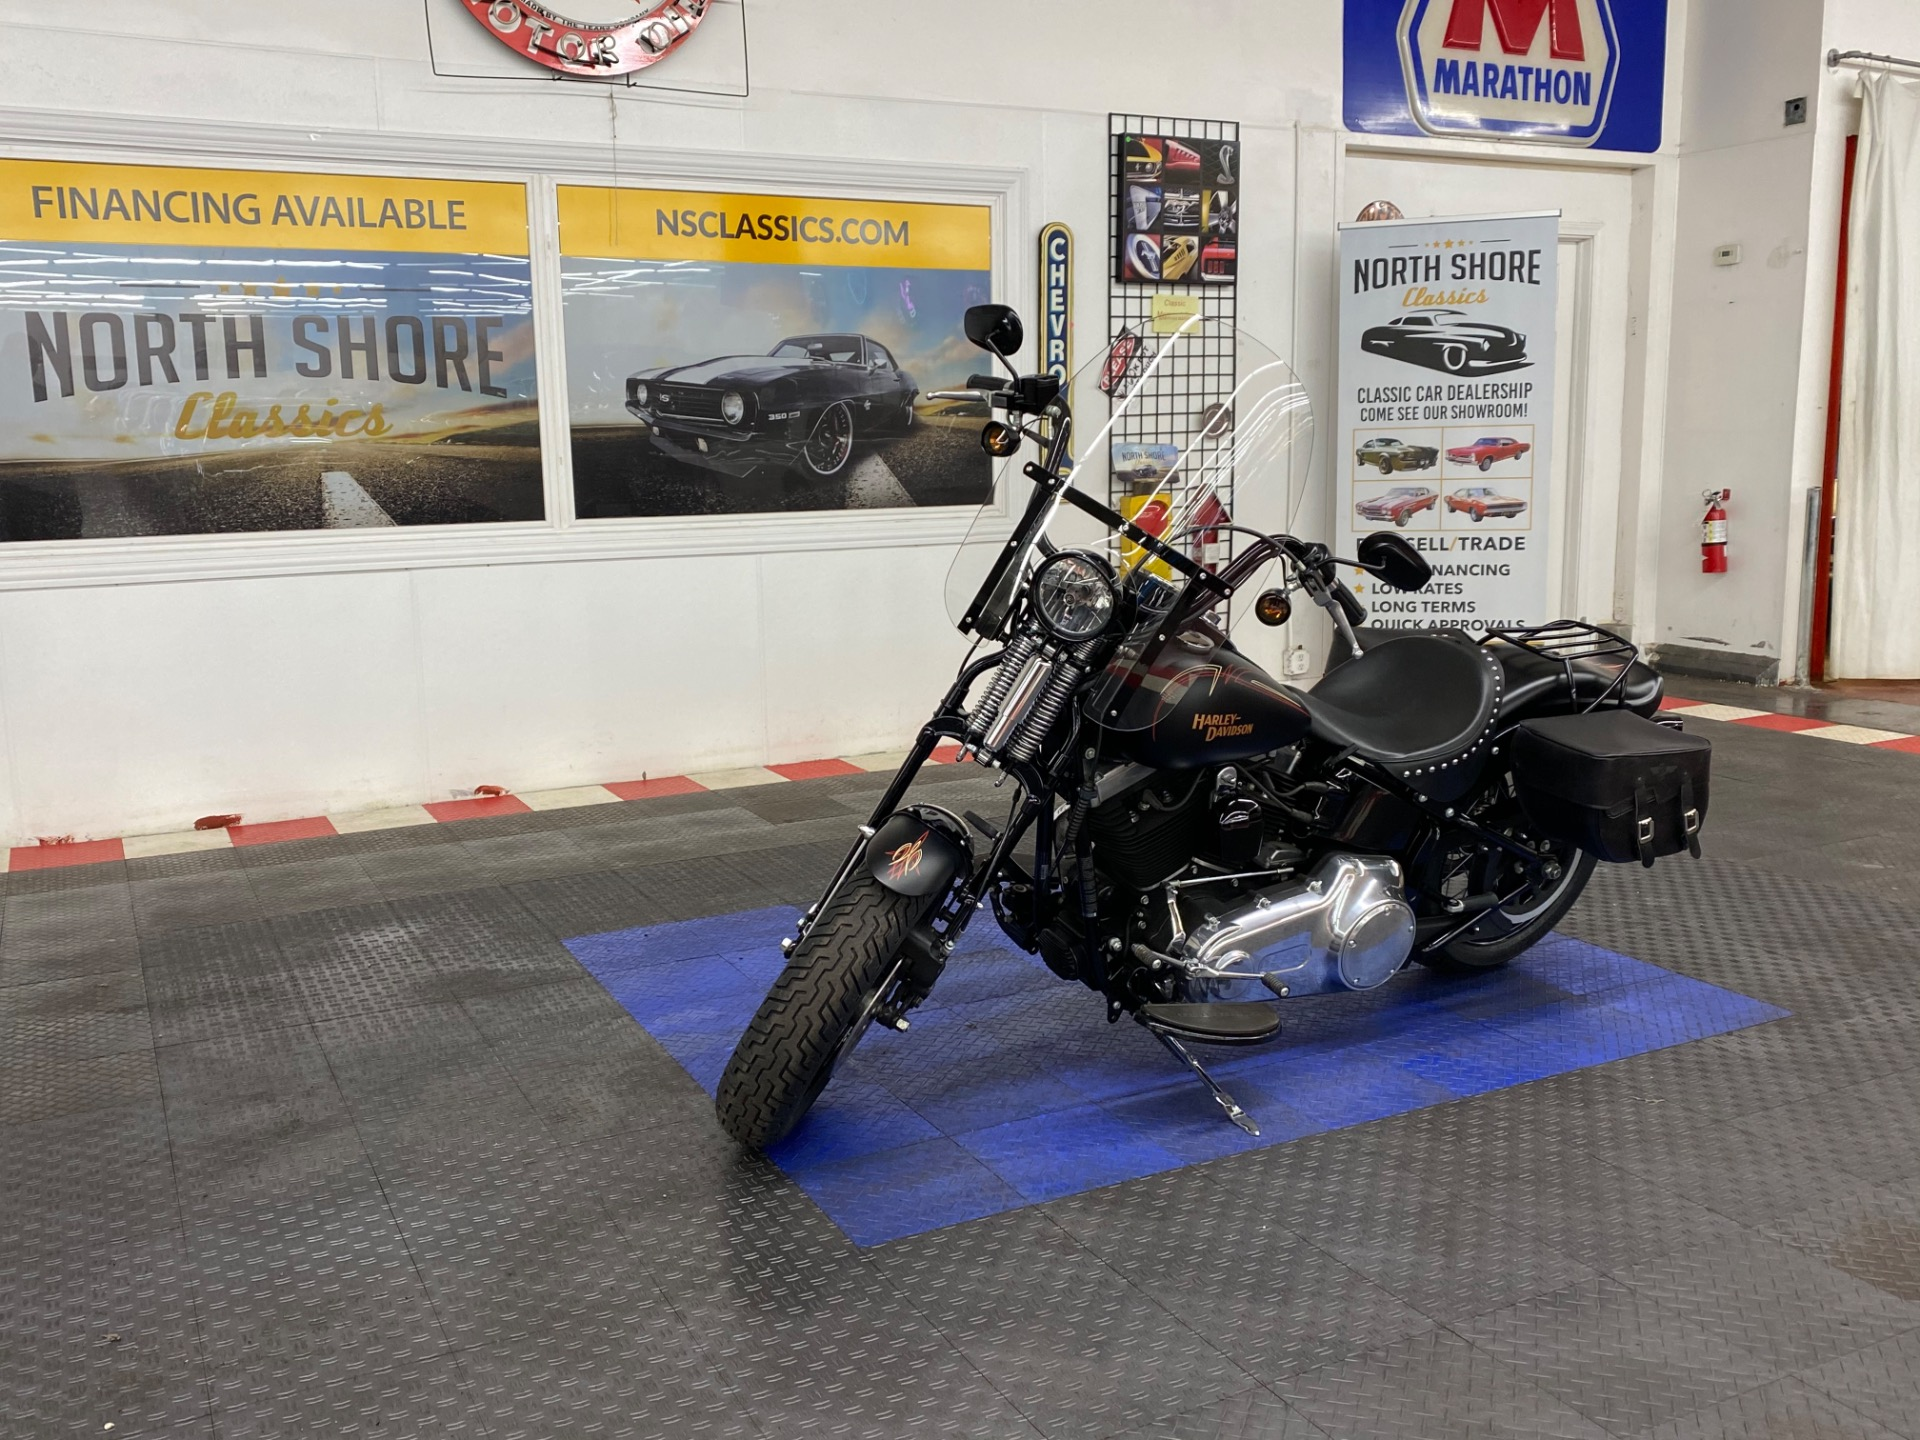 Used 2008 Harley Davidson FLSTB Cross Bones - SEE VIDEO - | Mundelein, IL